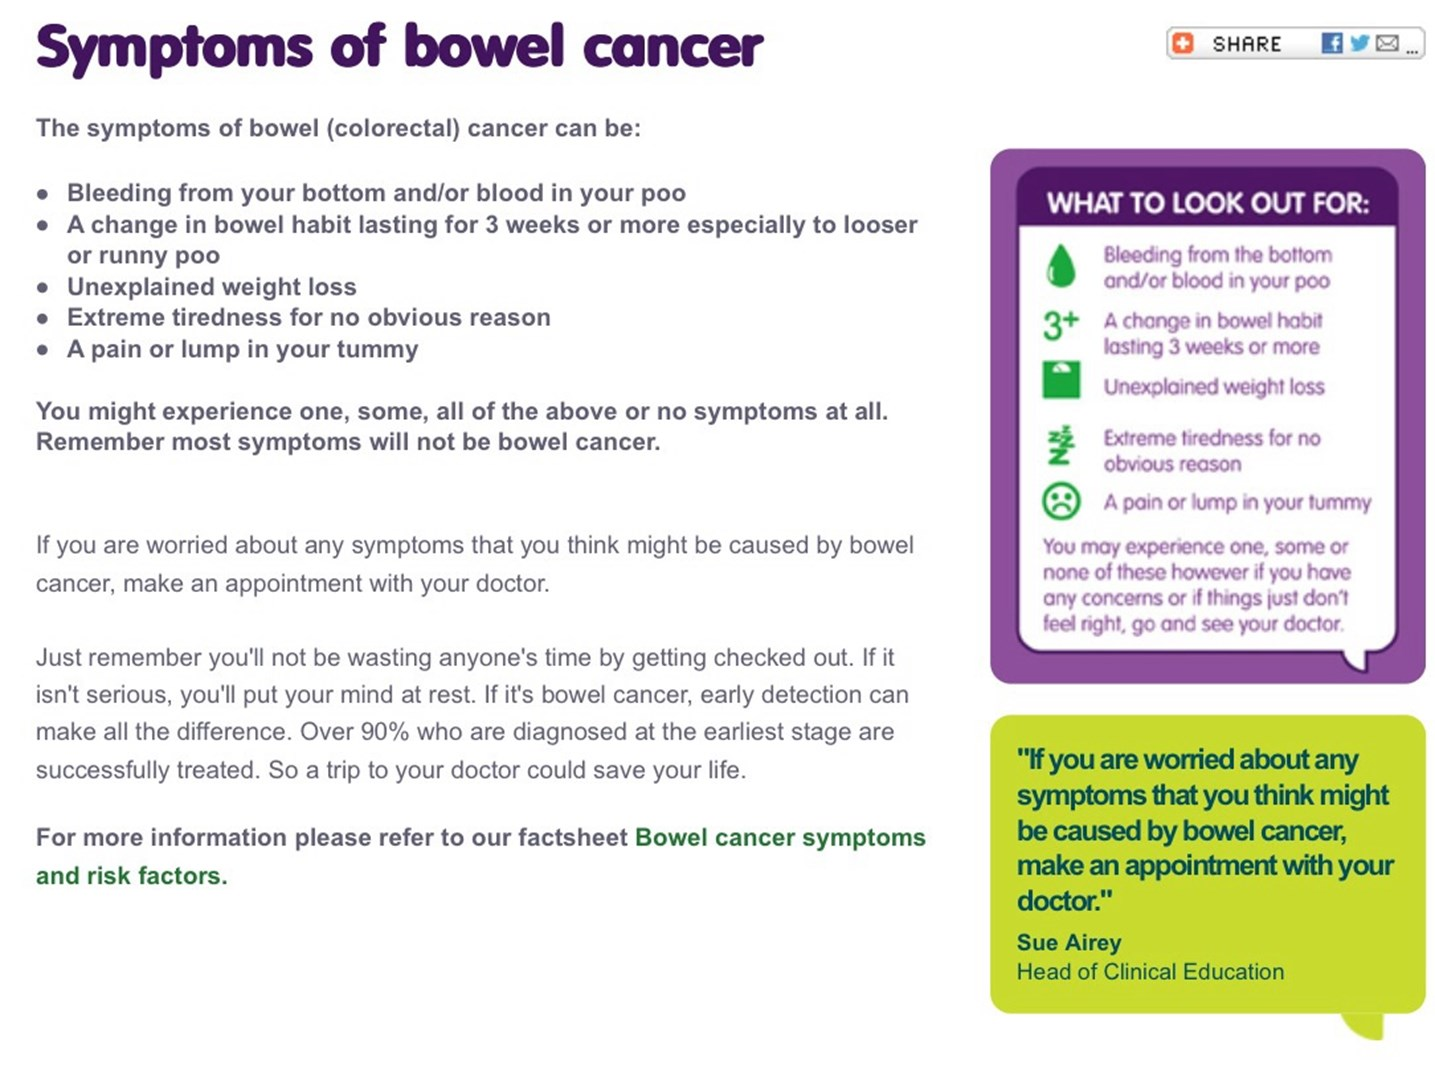 Suzanne Williams is fundraising for Bowel Cancer UK